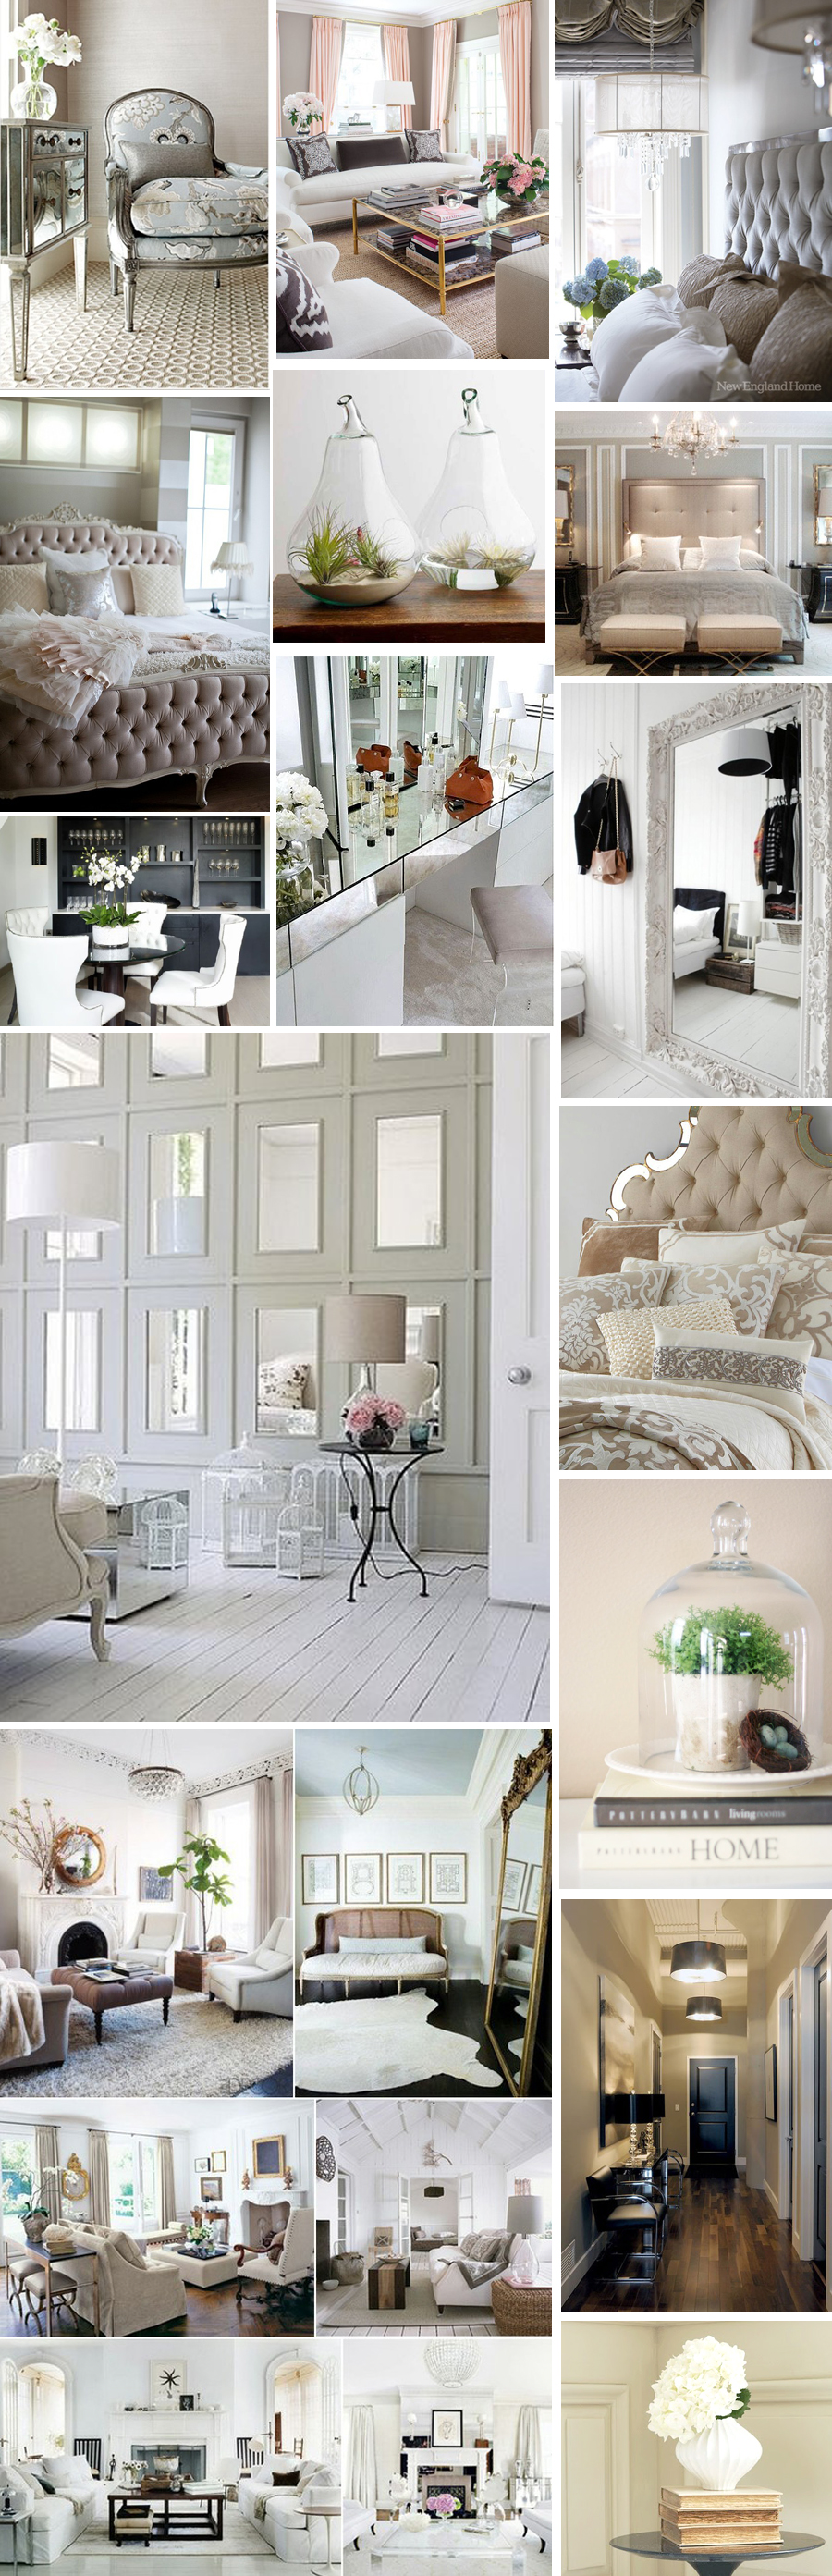 Mood board Interior inspiration bycelina Proof that a neutral